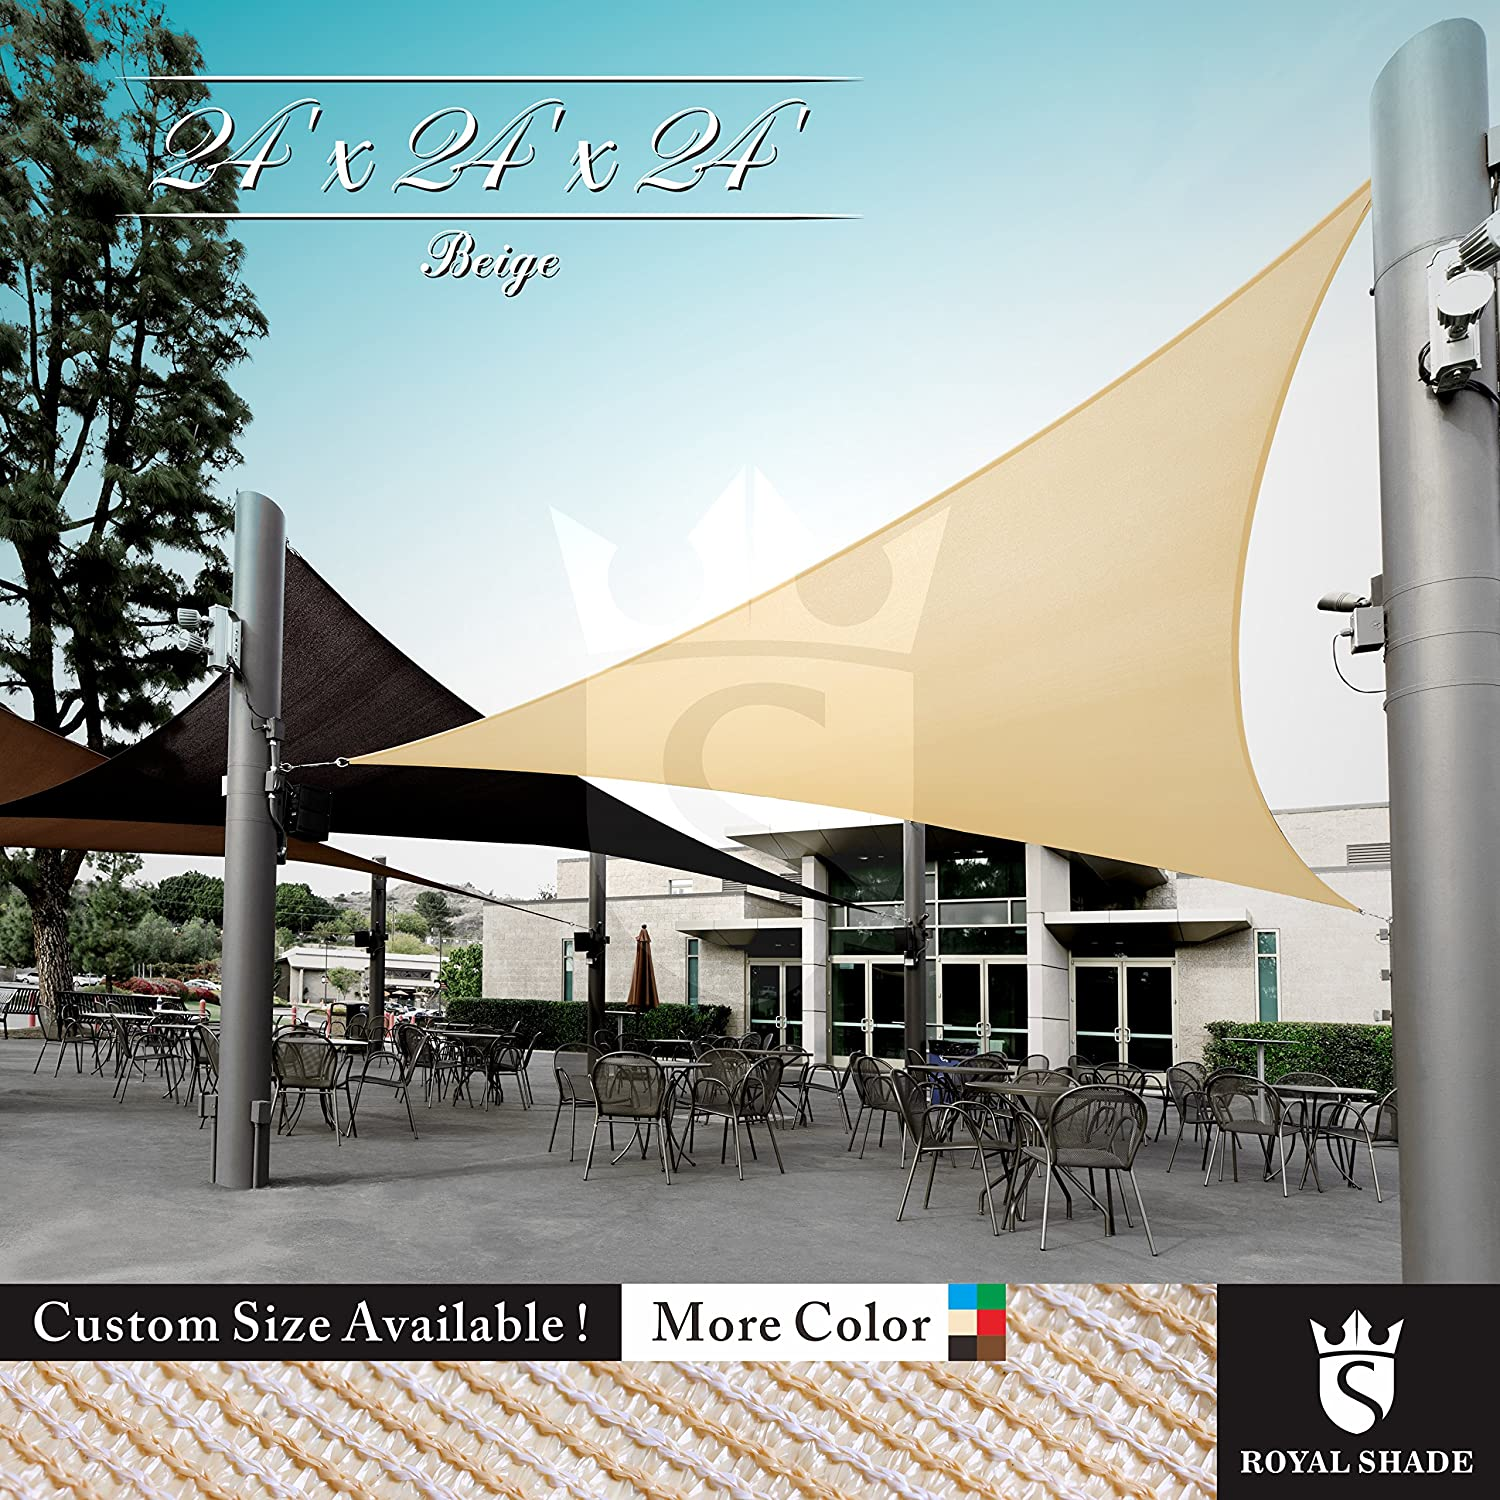 Royal Shade 24 x 24 x 24 Beige Triangle Sun Shade Sail Canopy Outdoor Patio Fabric Shelter Cloth Screen Awning – 95 UV Protection, 200 GSM, Heavy Duty, 5 Years Warranty, We Make Custom Size